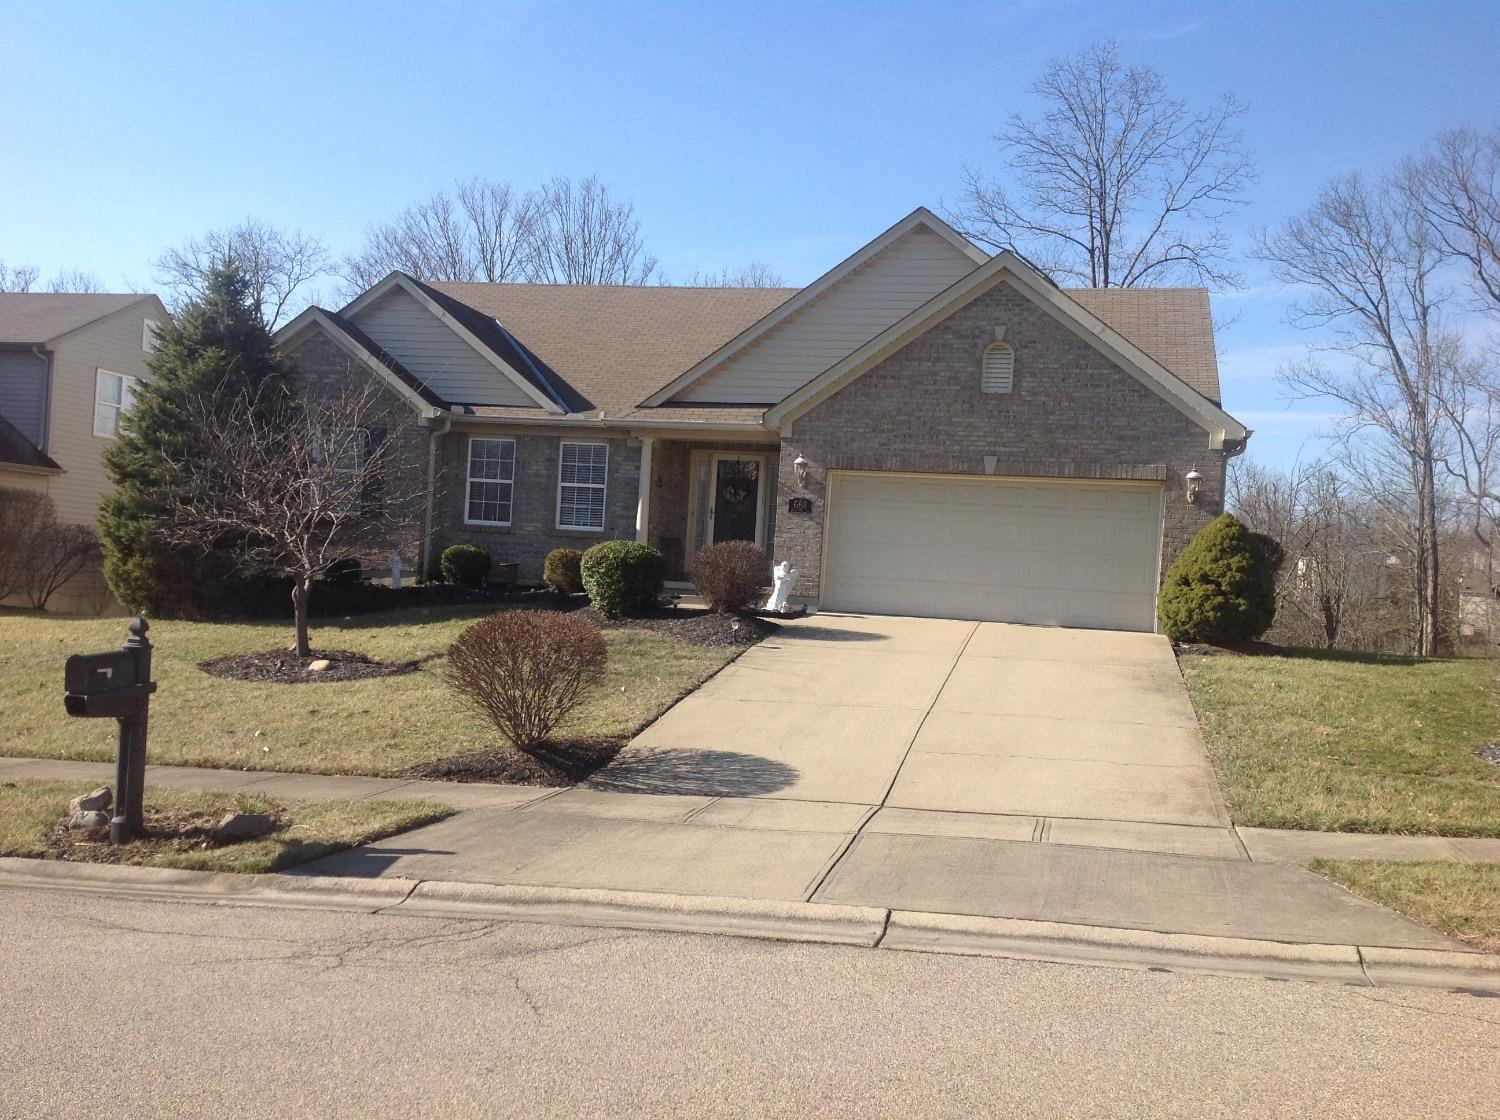 668 McCormick Ln Union Twp. (Clermont), OH